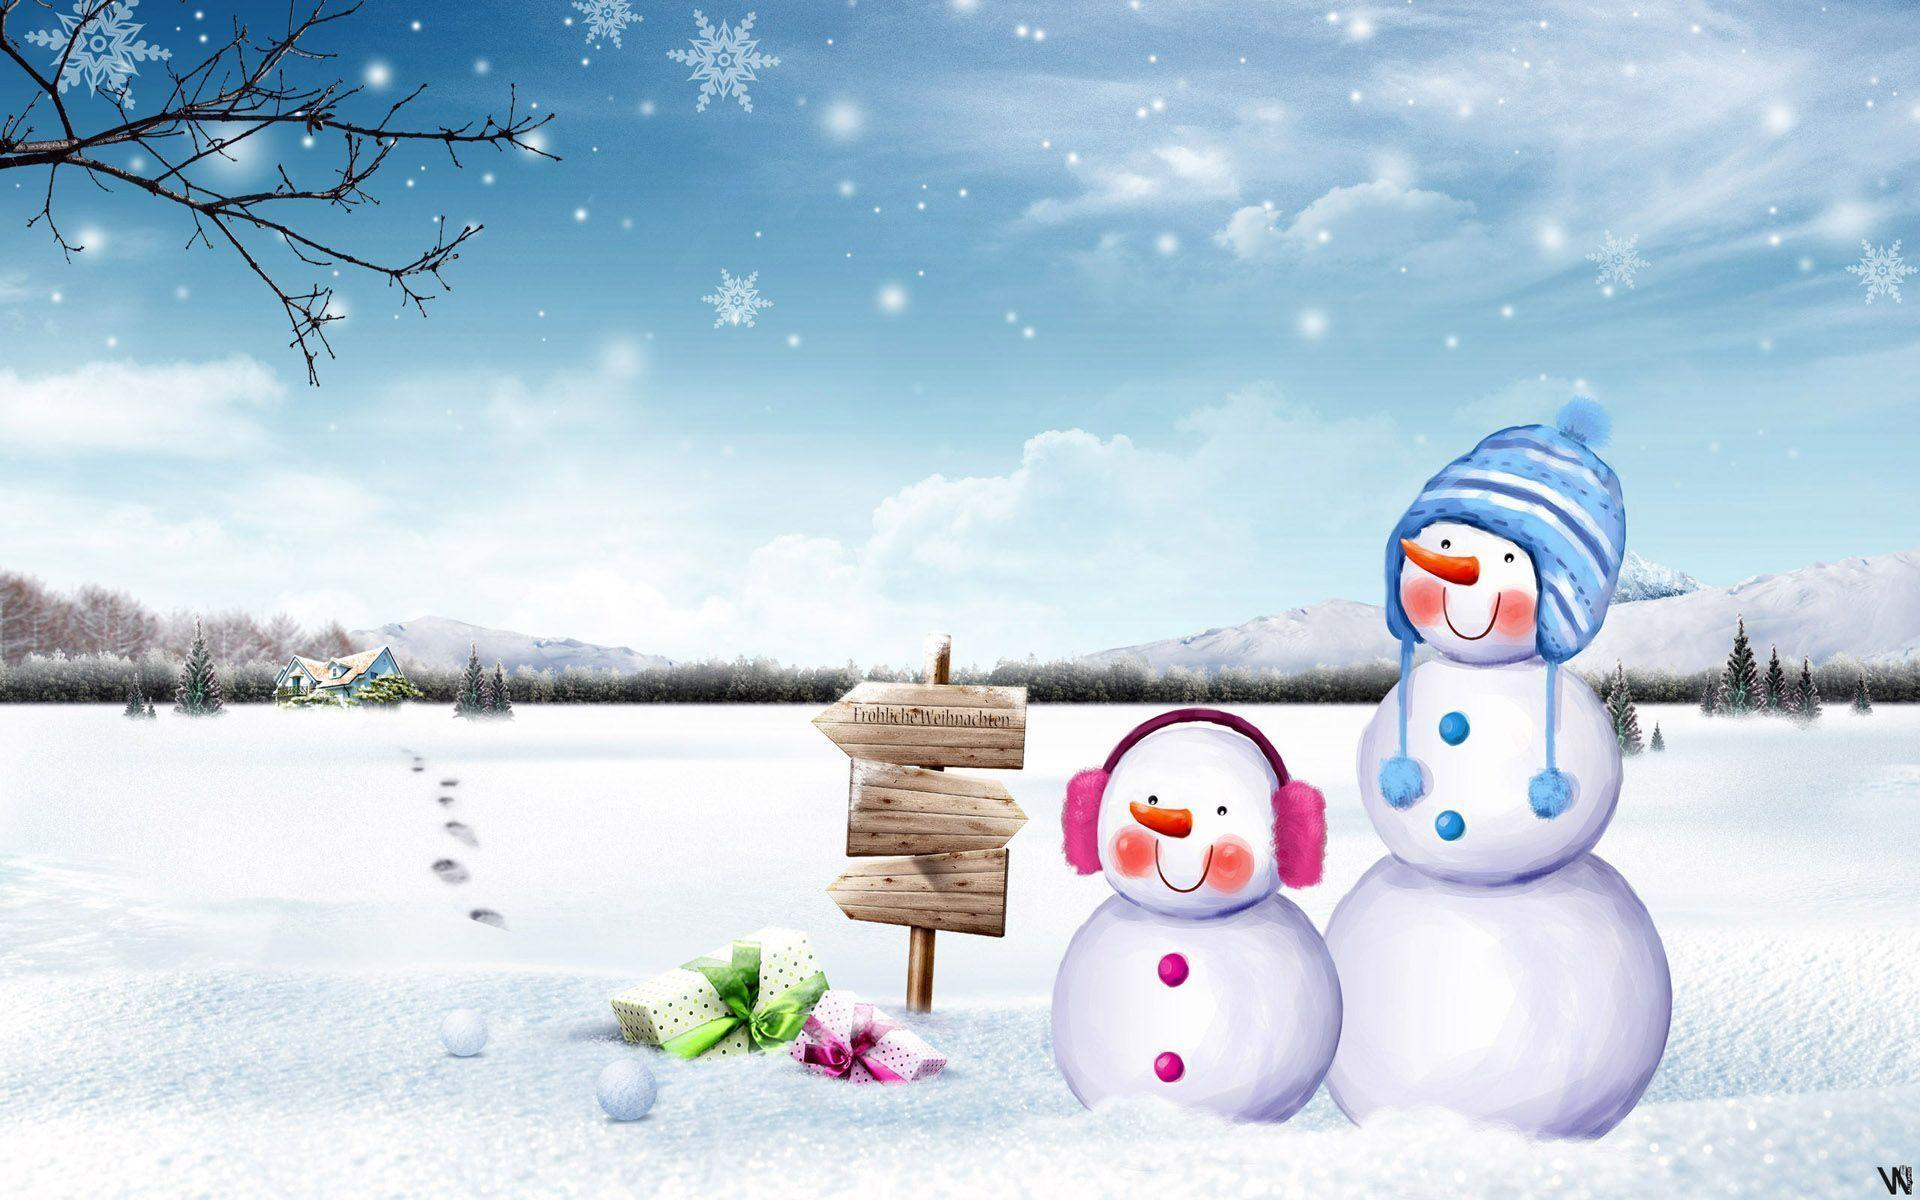 Gallery For gt Cute Winter Wallpaper 1920x1200